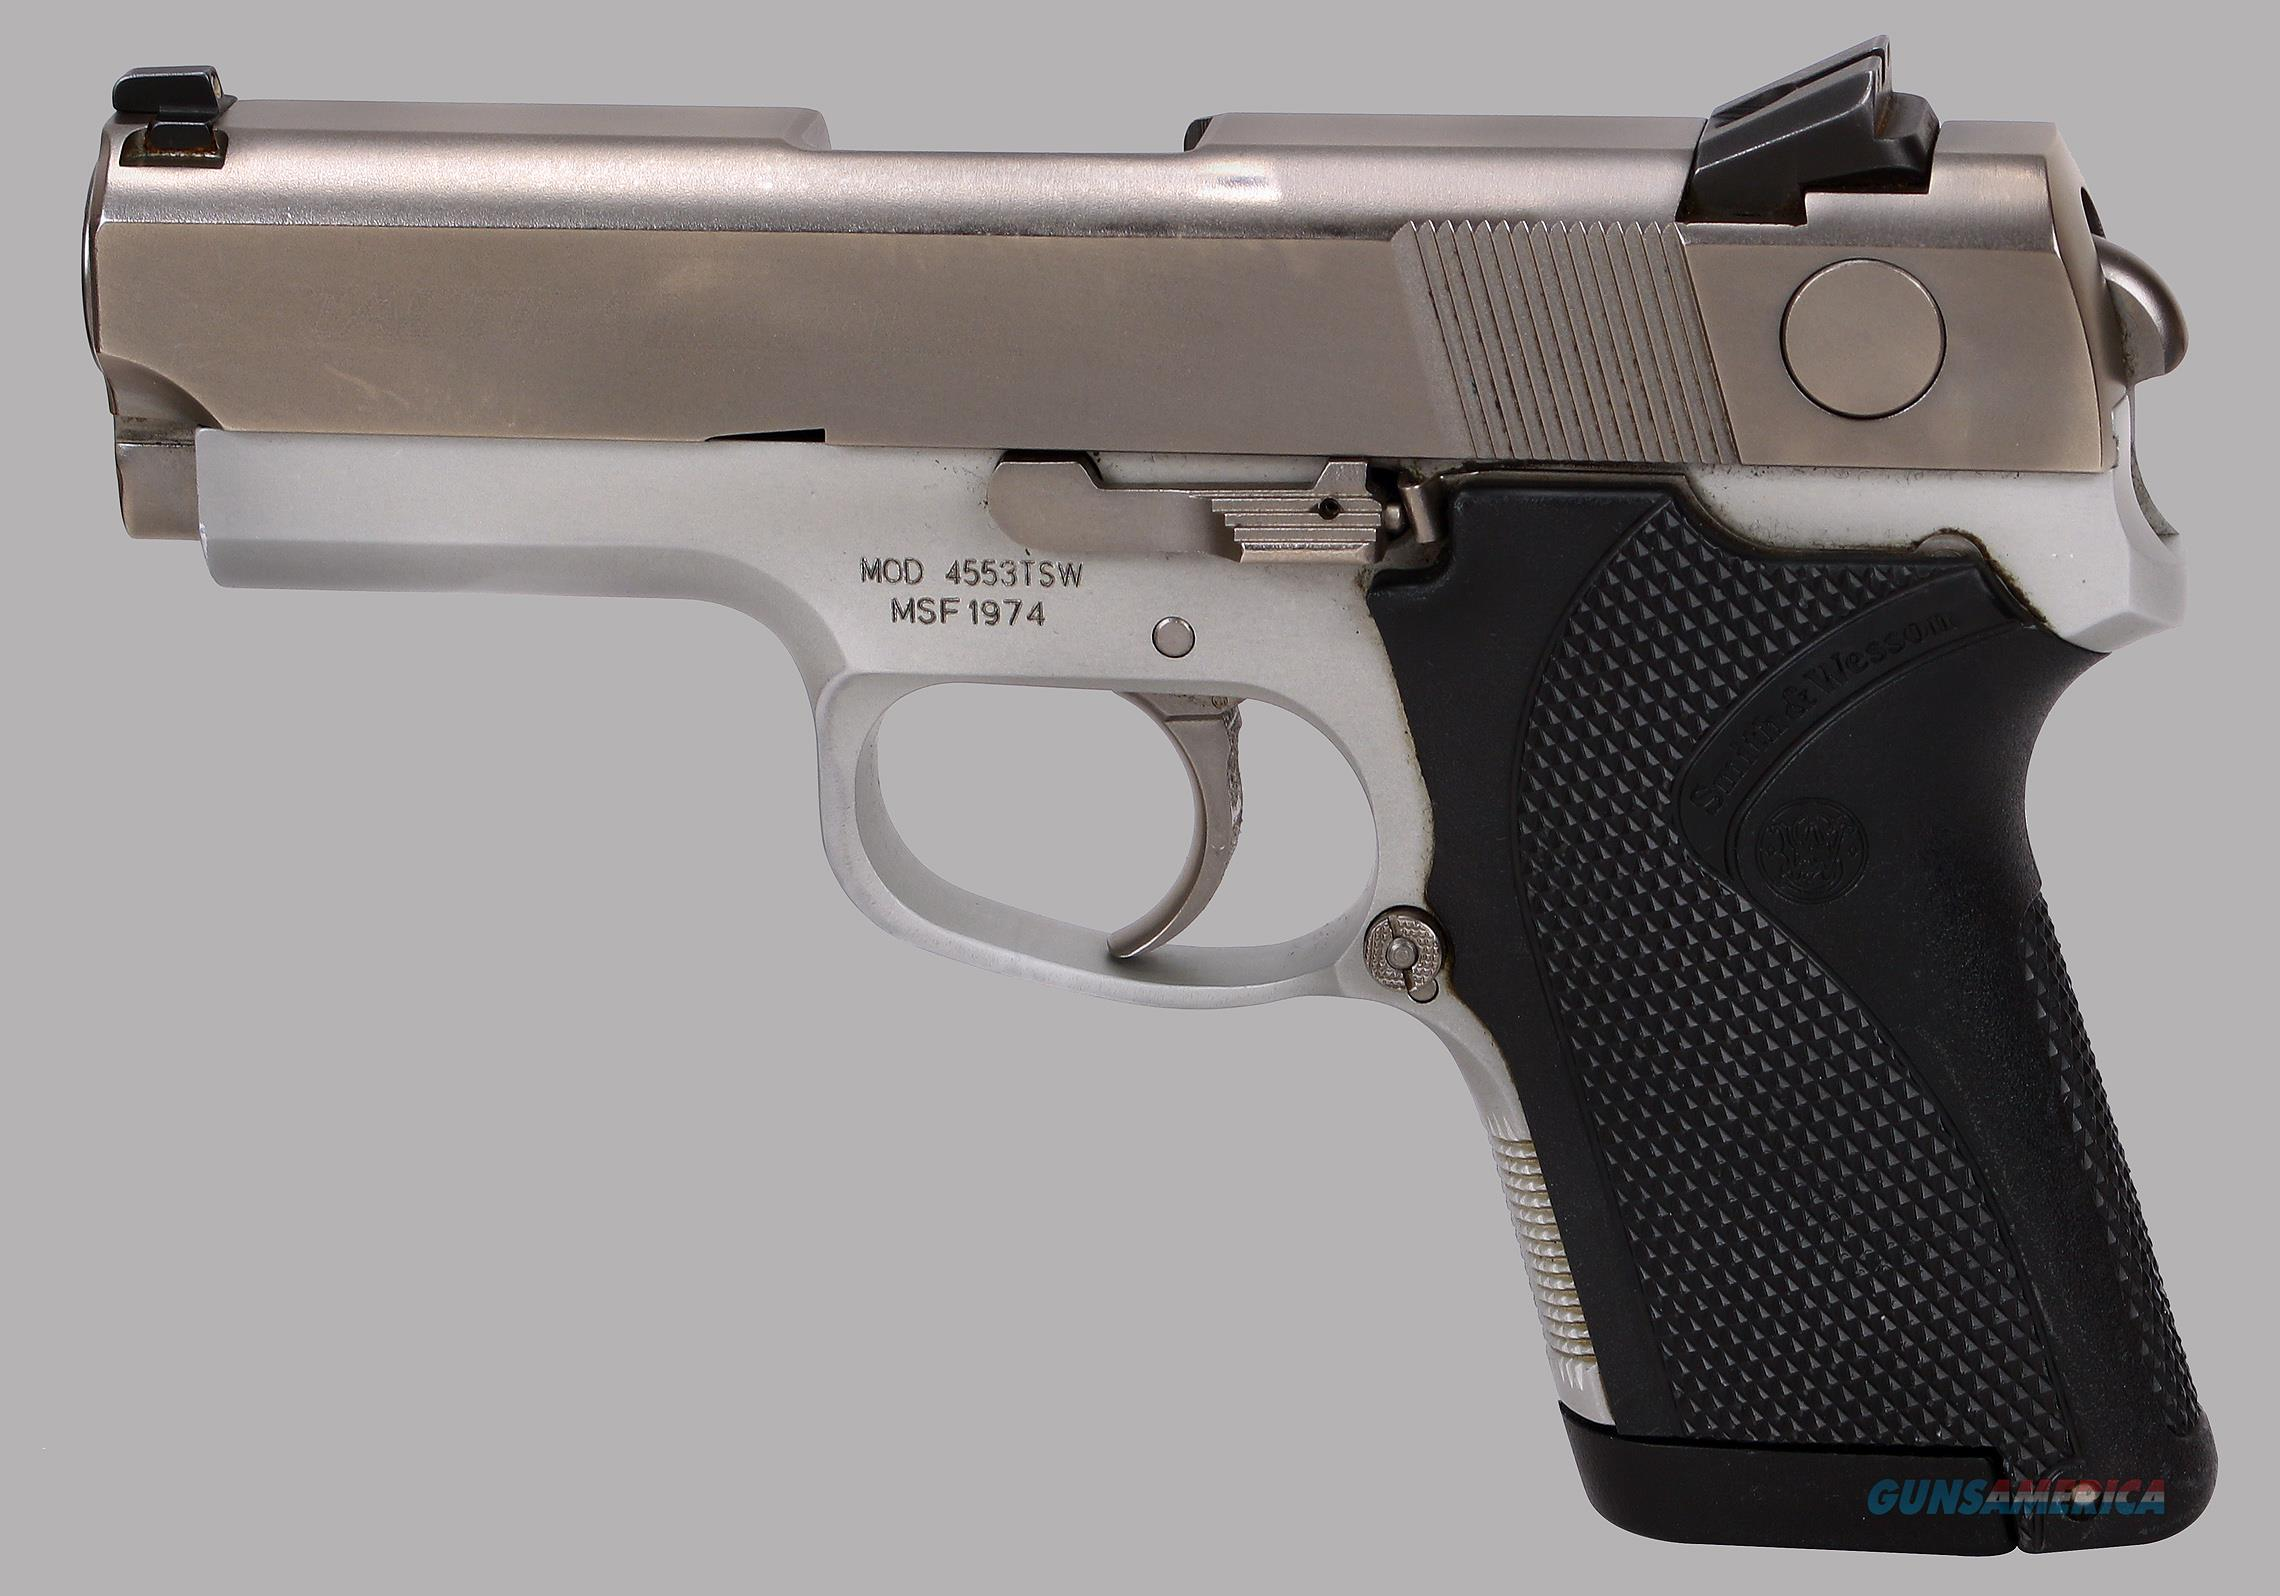 Smith & Wesson 45acp Model 4553 TSW Pistol  Guns > Pistols > Smith & Wesson Pistols - Autos > Steel Frame